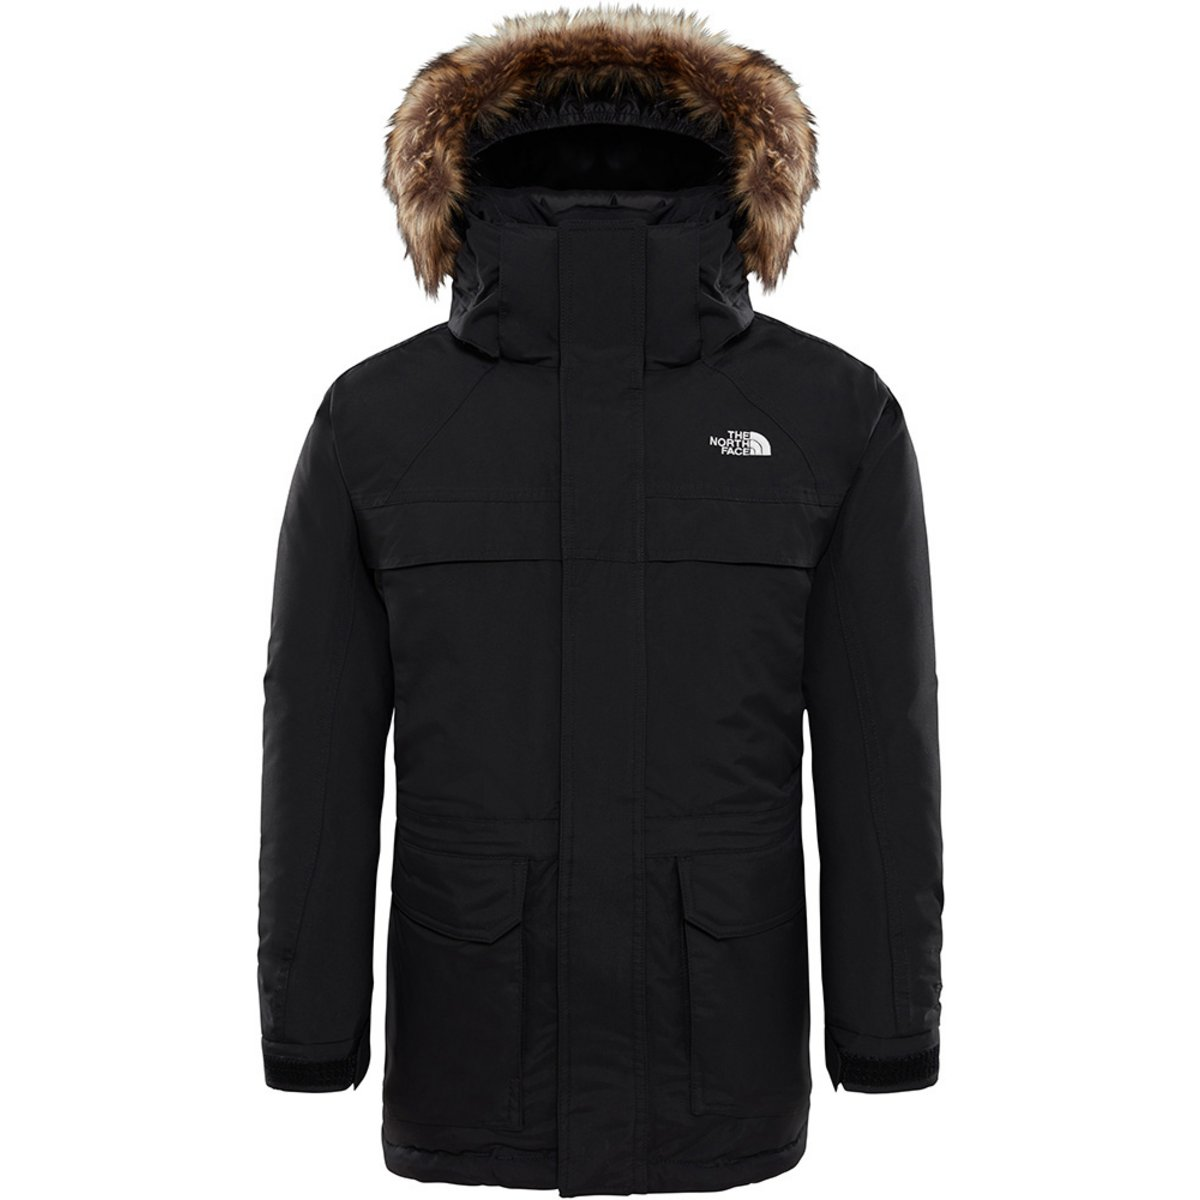 The North Face Boys' McMurdo DryVent Parka Jacket XL 0